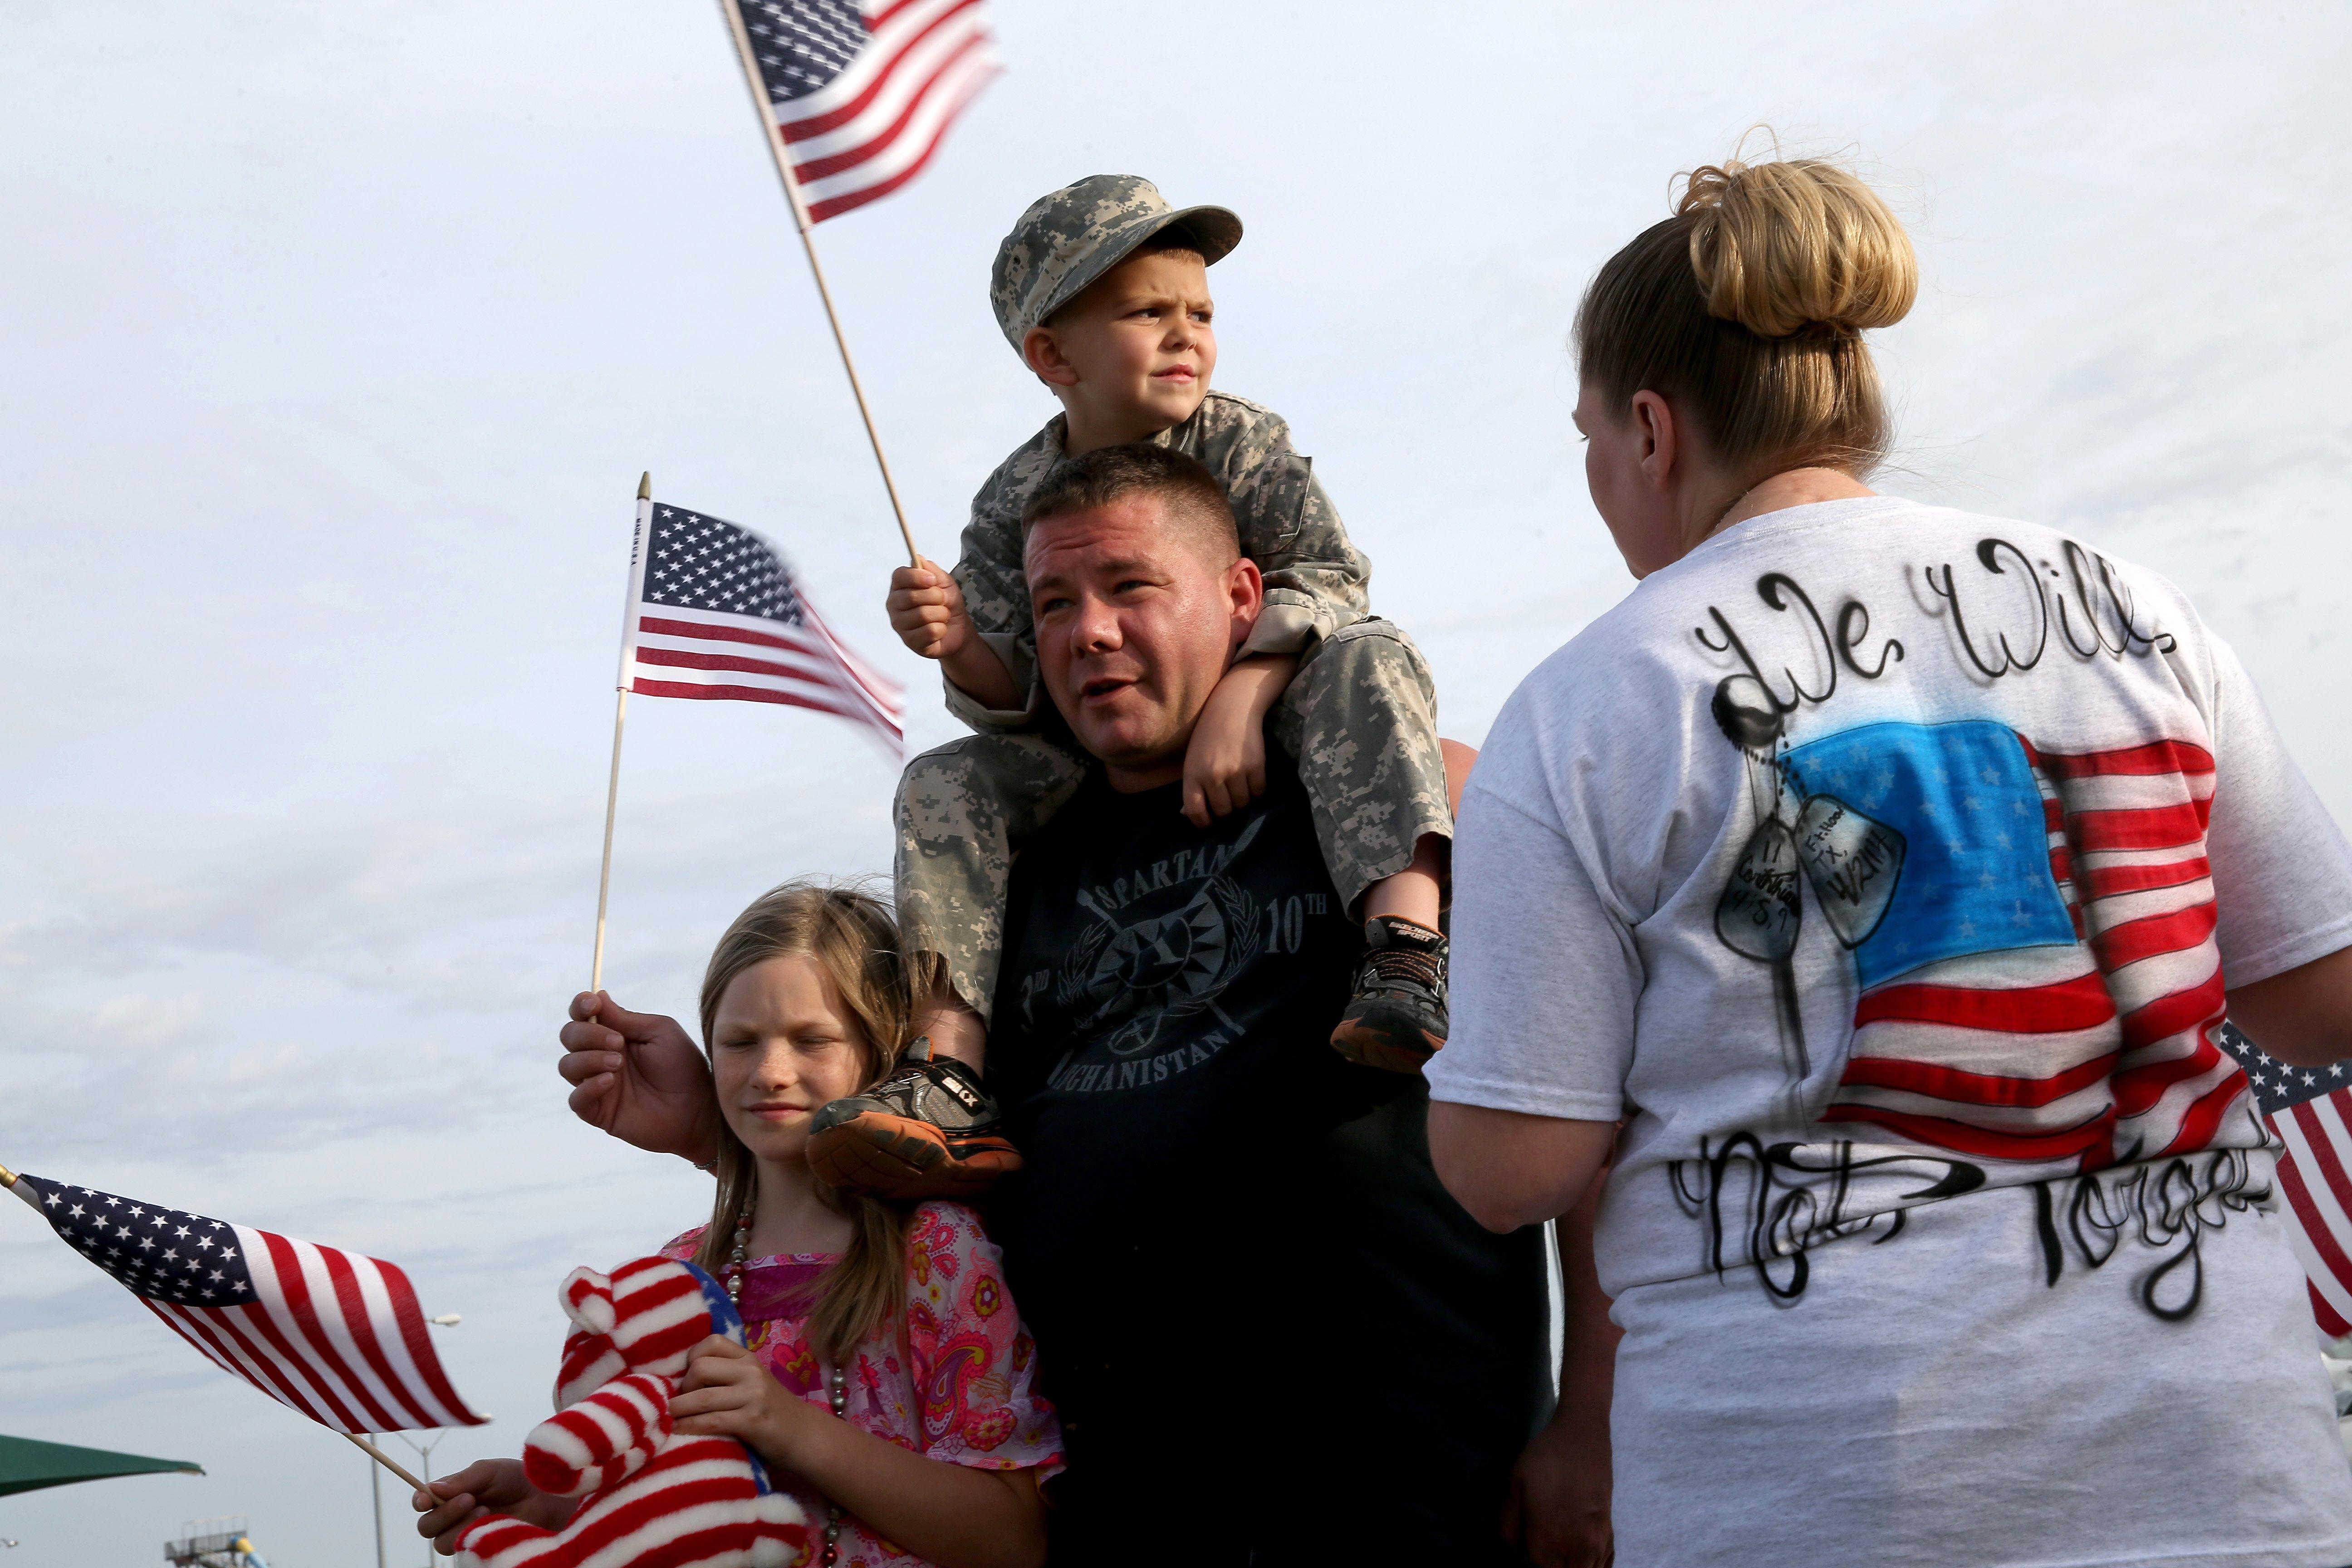 Image: Fort Hood Mourns After Mass Shootings